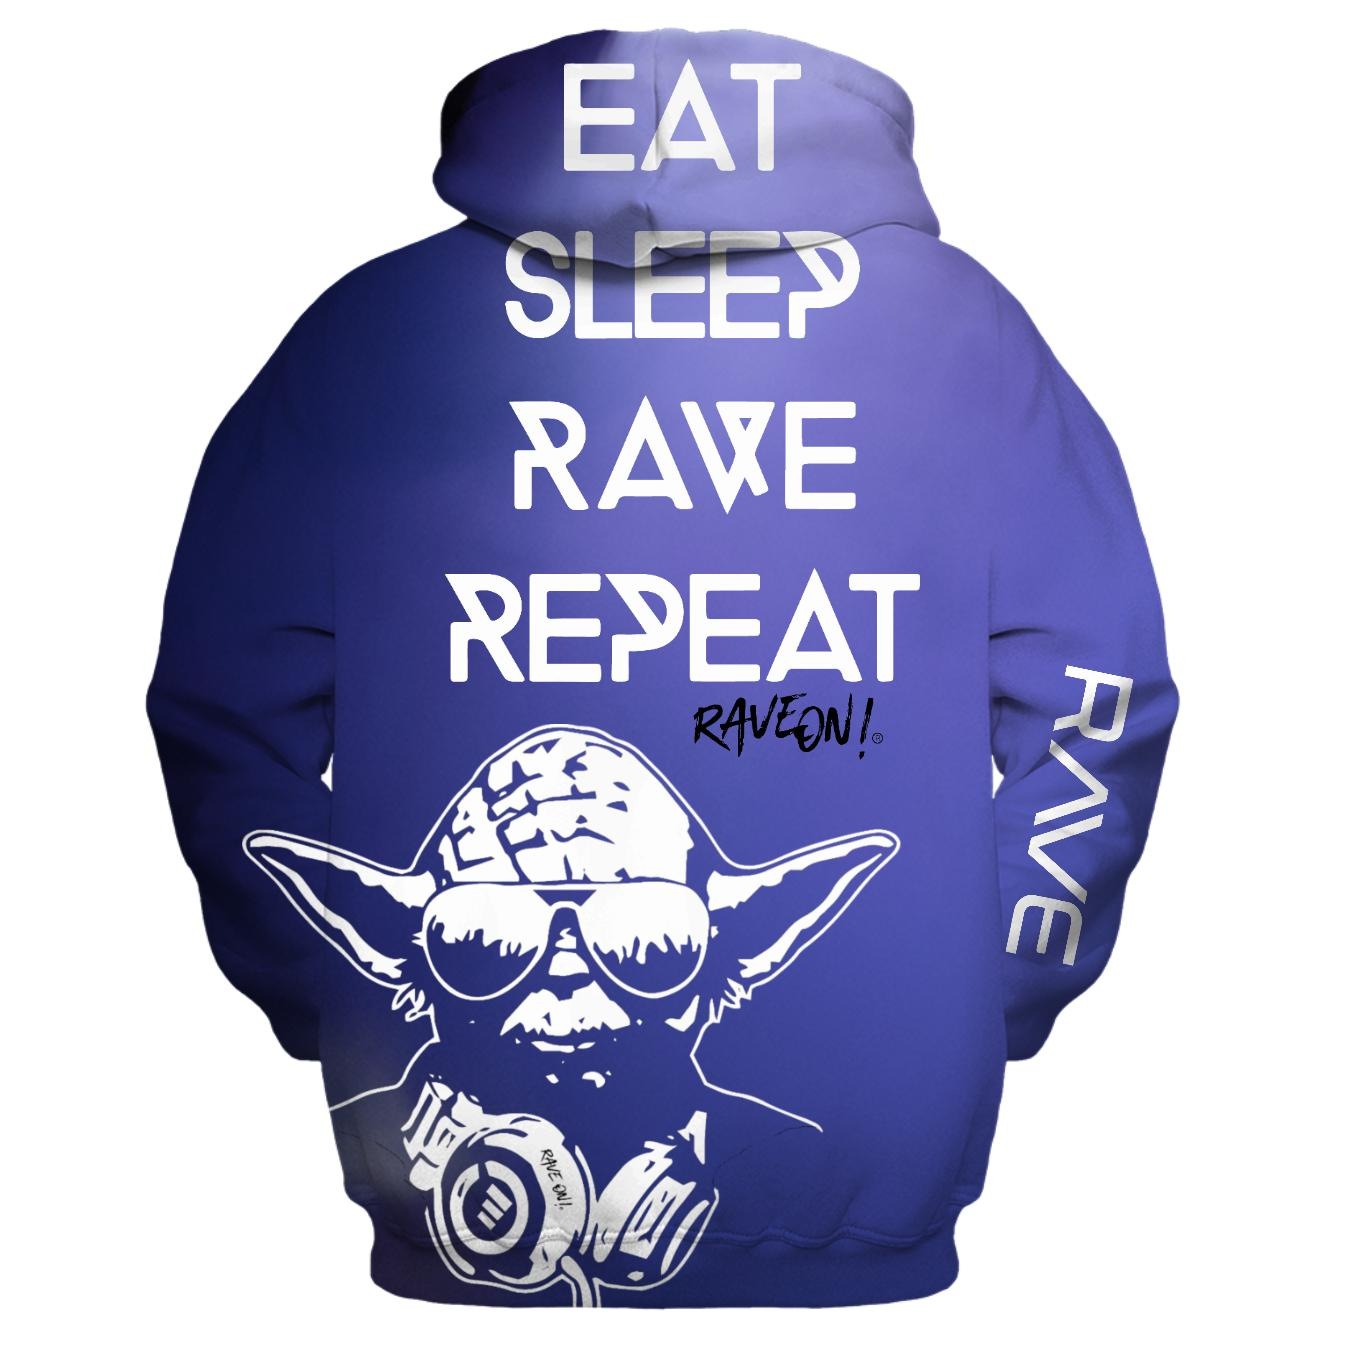 RAVE REPEAT Yoda - Rave On!® All-Over-360Print Hoodies - Rave On!® der Club & Techno Szene Shop für Coole Junge Mode Streetwear Style & Fashion Outfits + Sexy Festival 420 Stuff